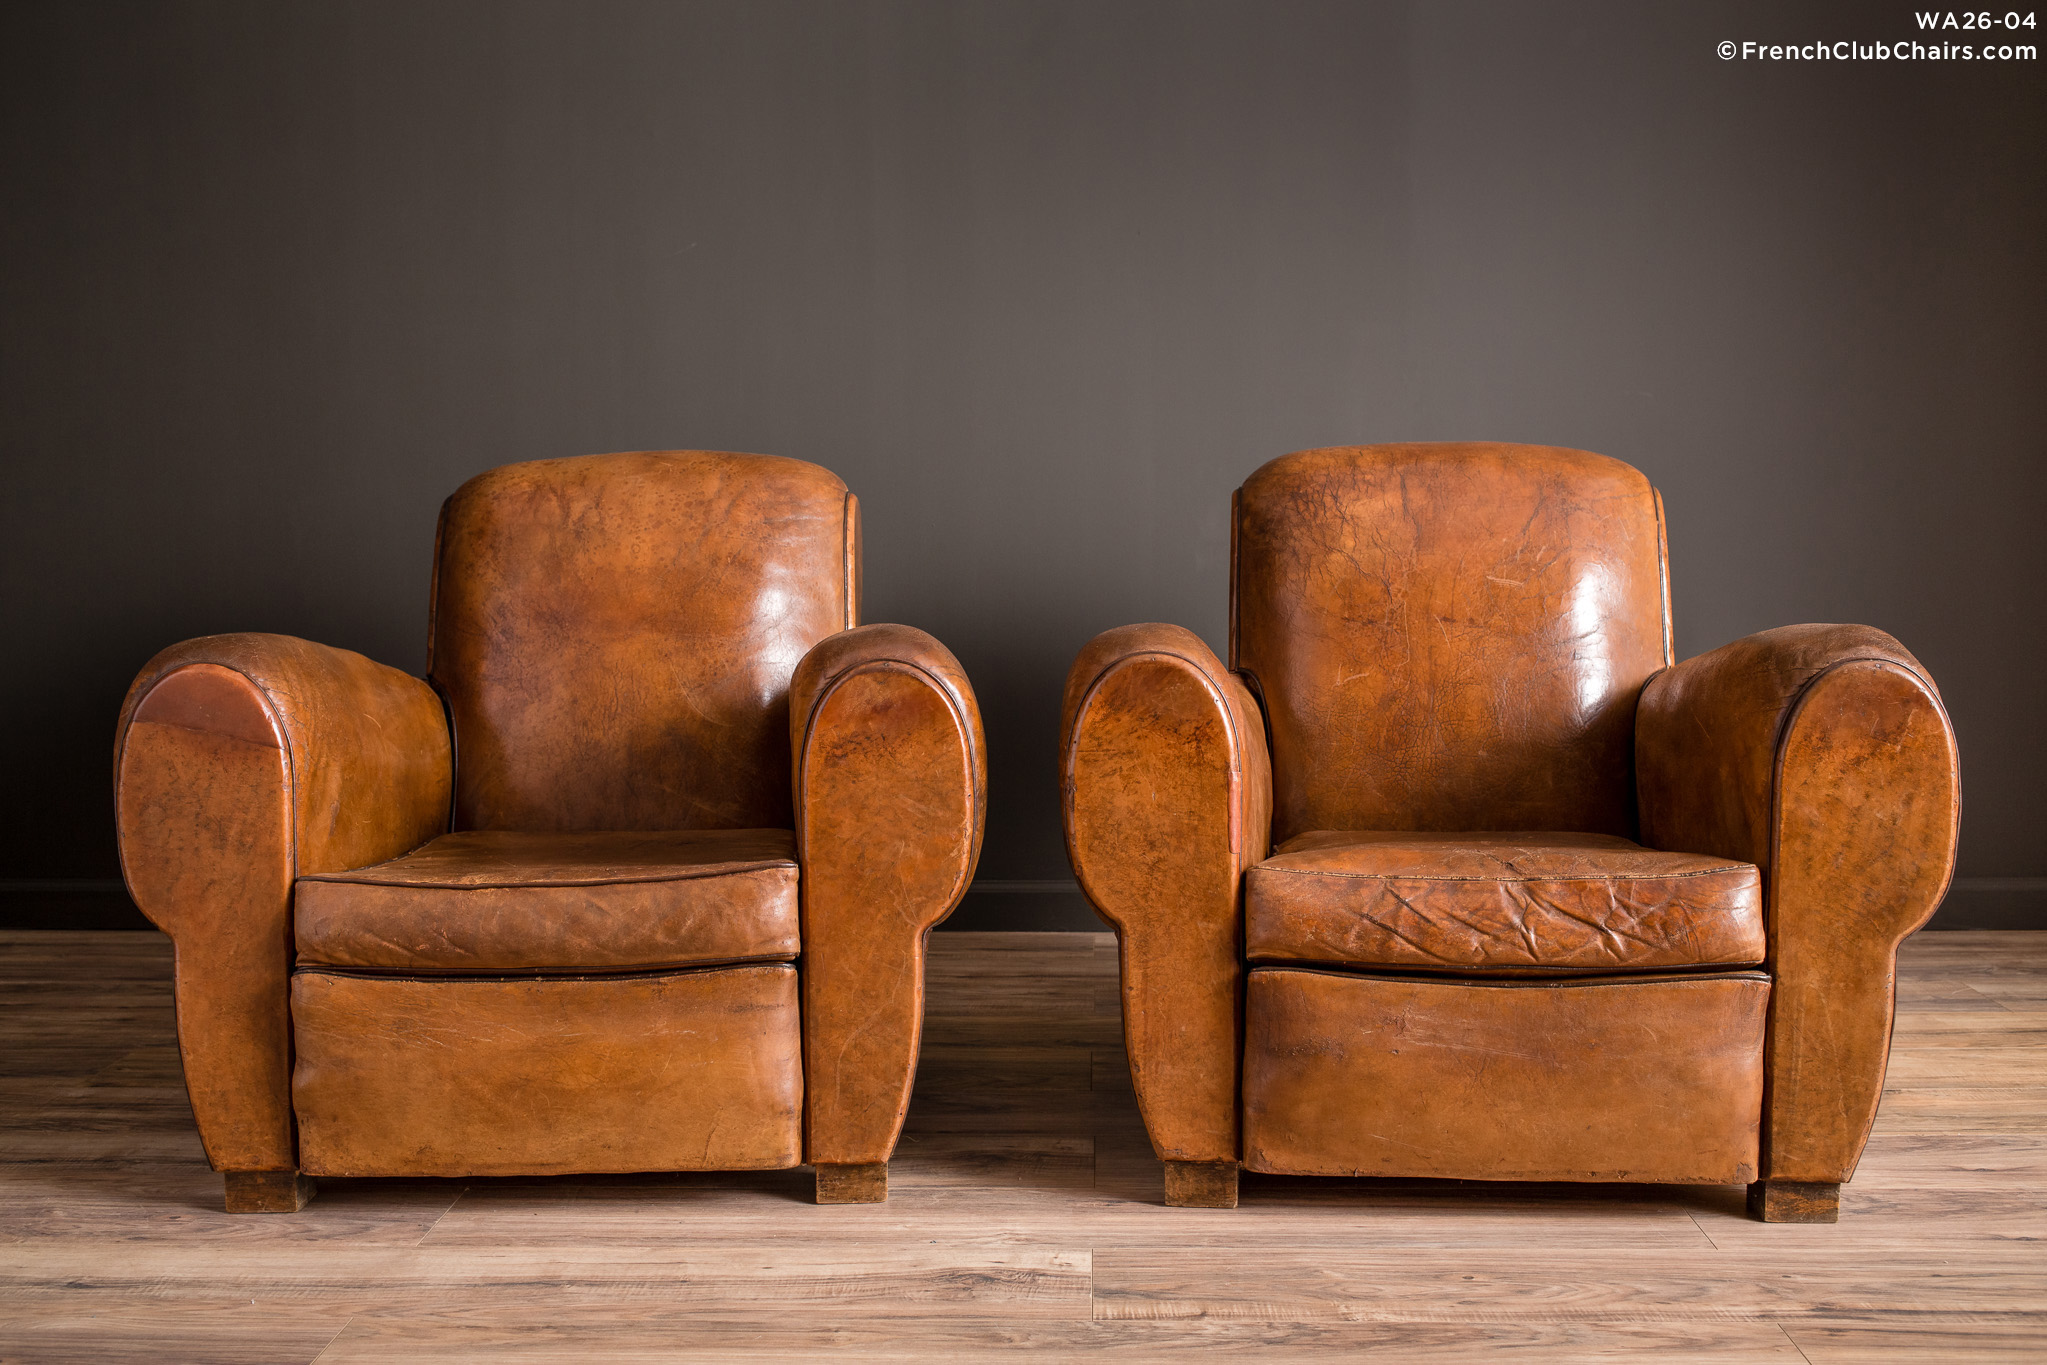 WA_26-04_La_Jura_Rollback_Ancien_Pair_R_1TQ-v01-williams-antiks-leather-french-club-chair-wa_fcccom